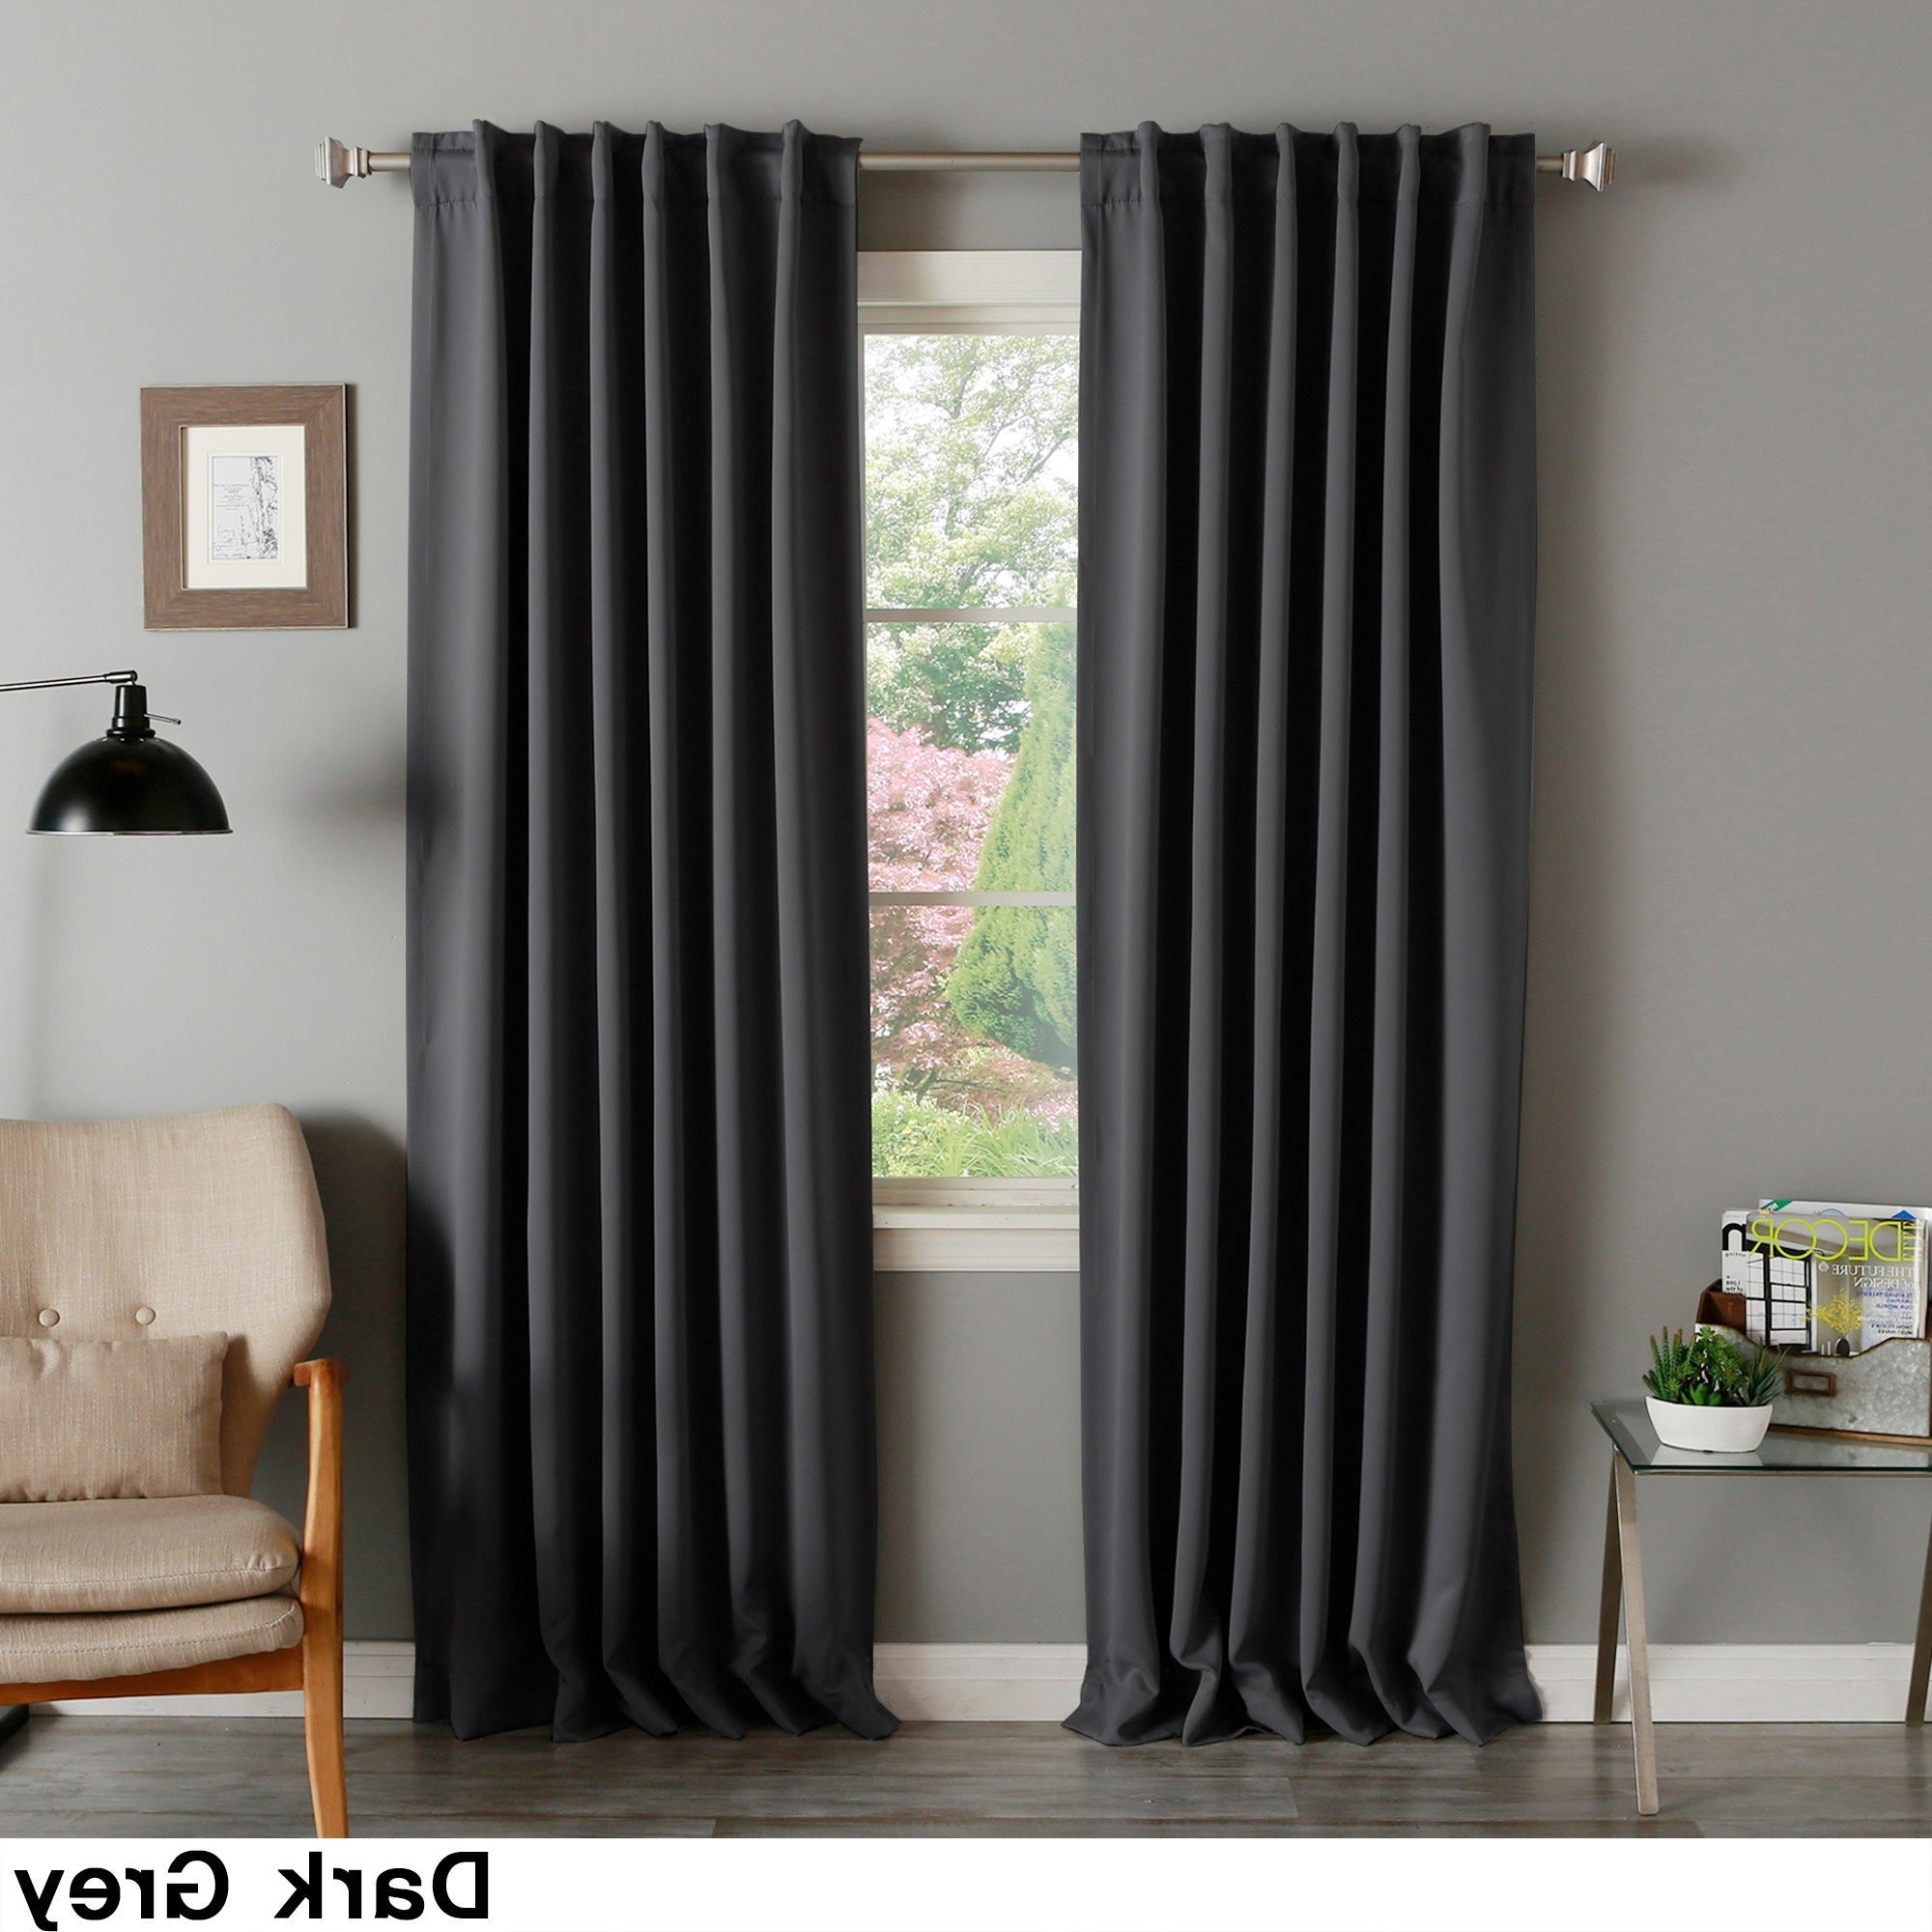 2020 Aurora Home Solid Thermal Insulated 108 Inch Blackout Curtain Panel Pair – 52 X 108 In Thermal Insulated Blackout Curtain Pairs (View 12 of 20)